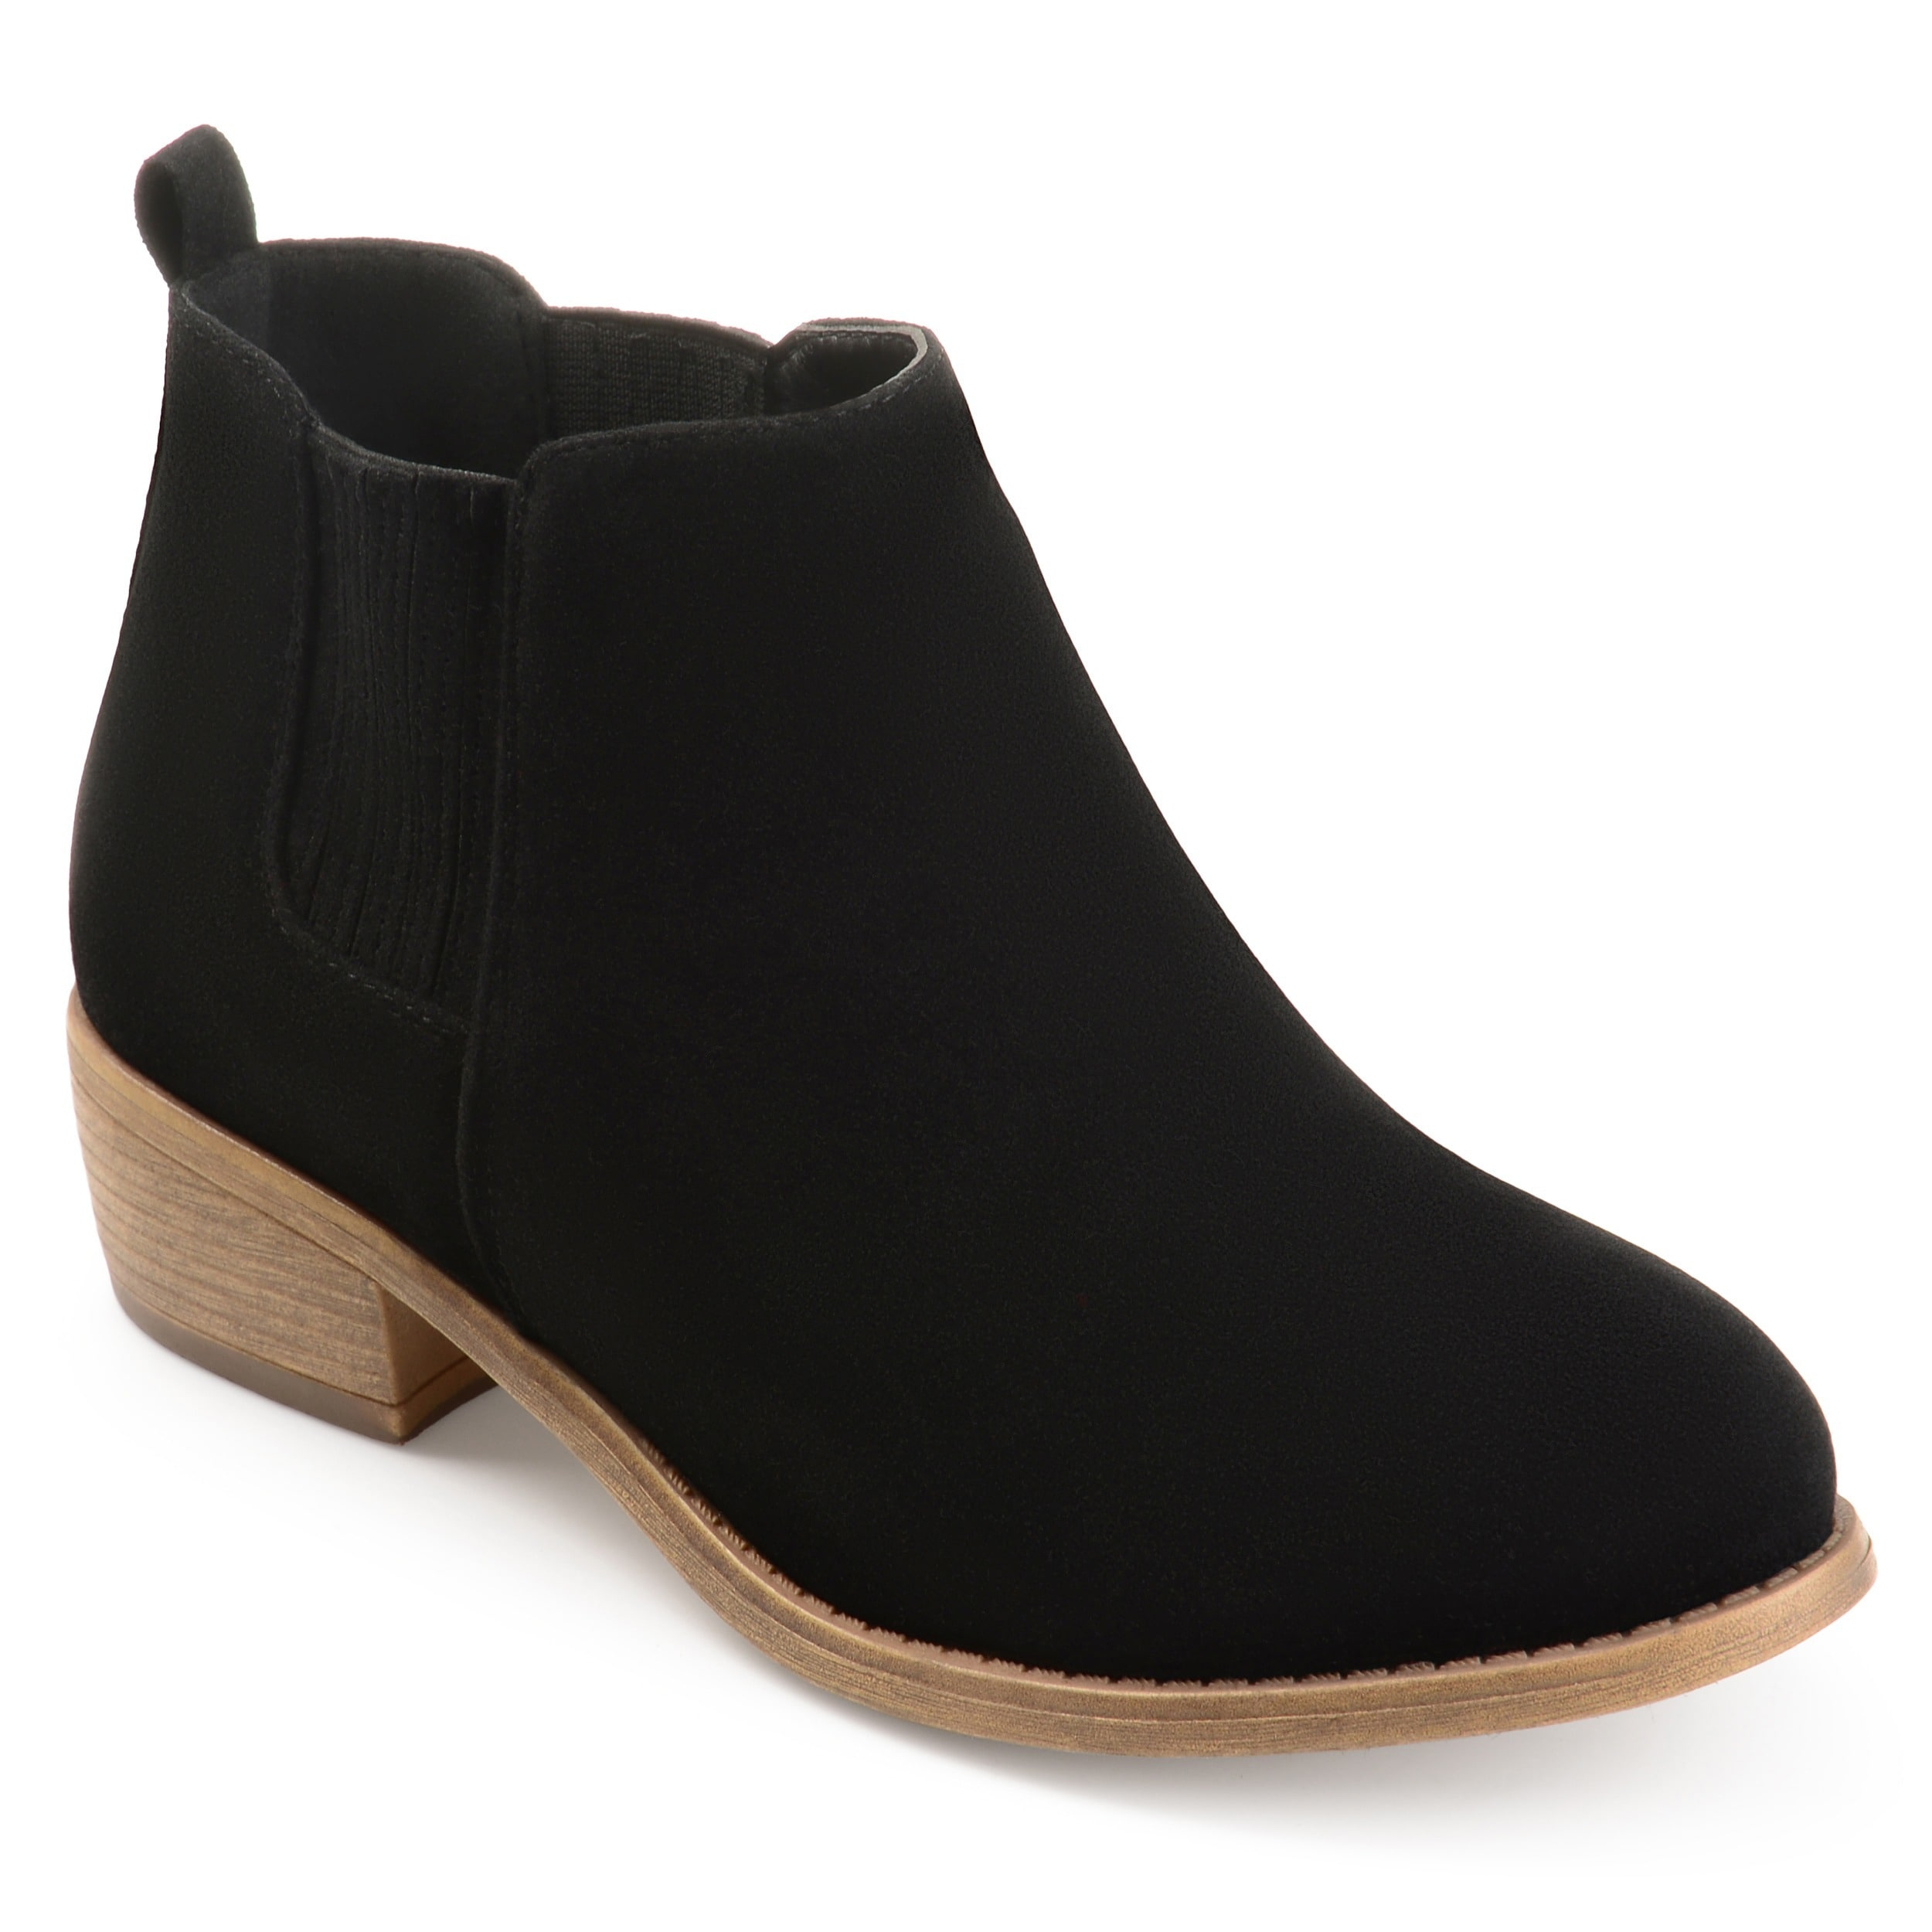 Journee Collection Ramsey ... Women's Ankle Boots iJpvHVRthT